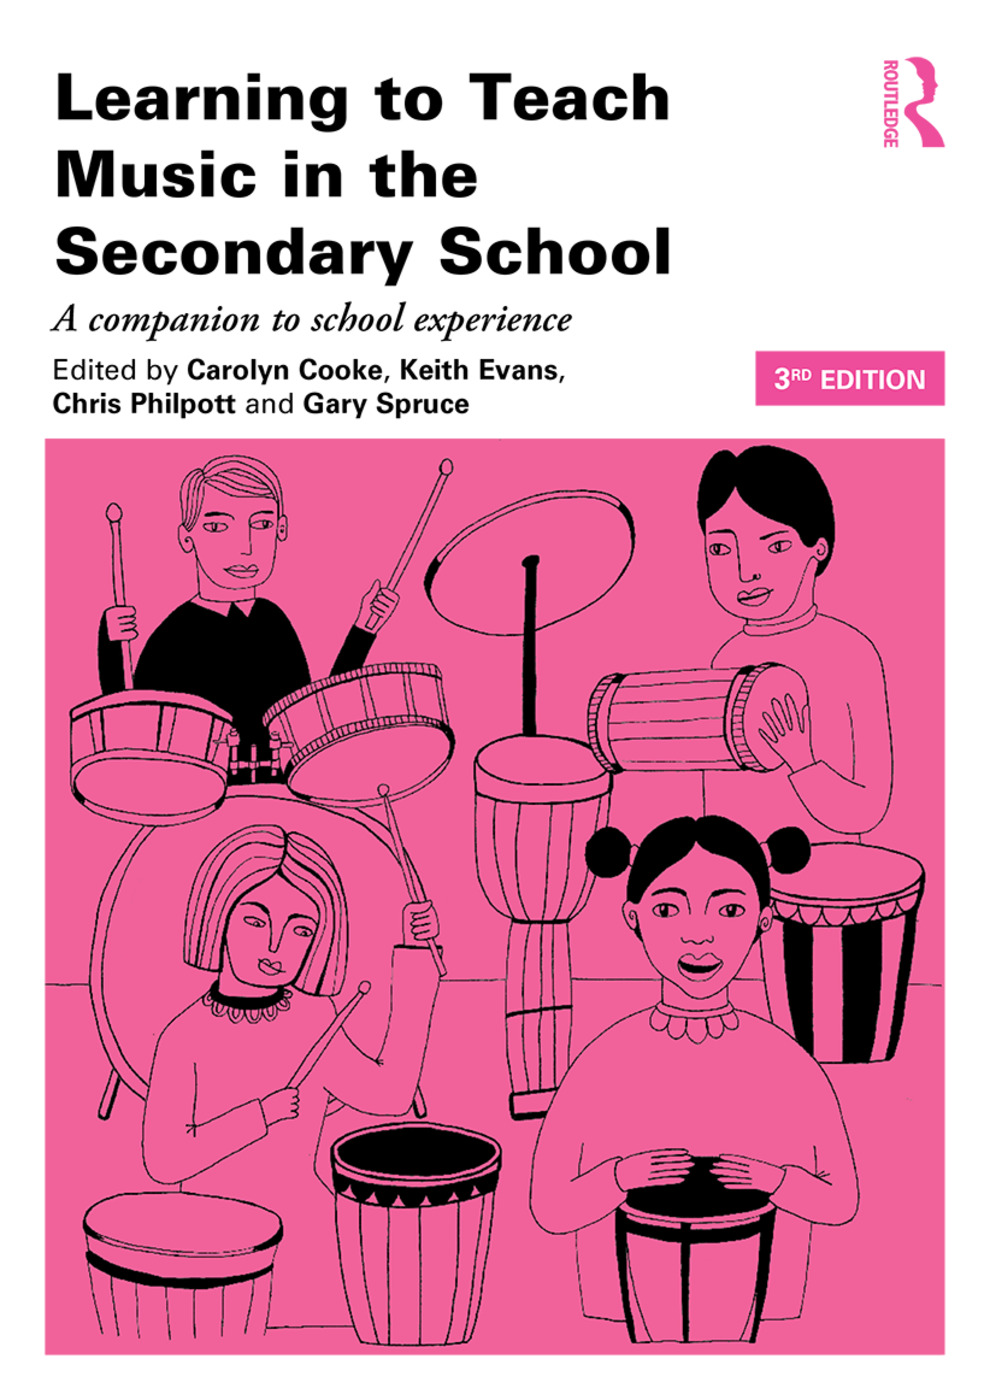 Learning to Teach Music in the Secondary School: A companion to school experience book cover